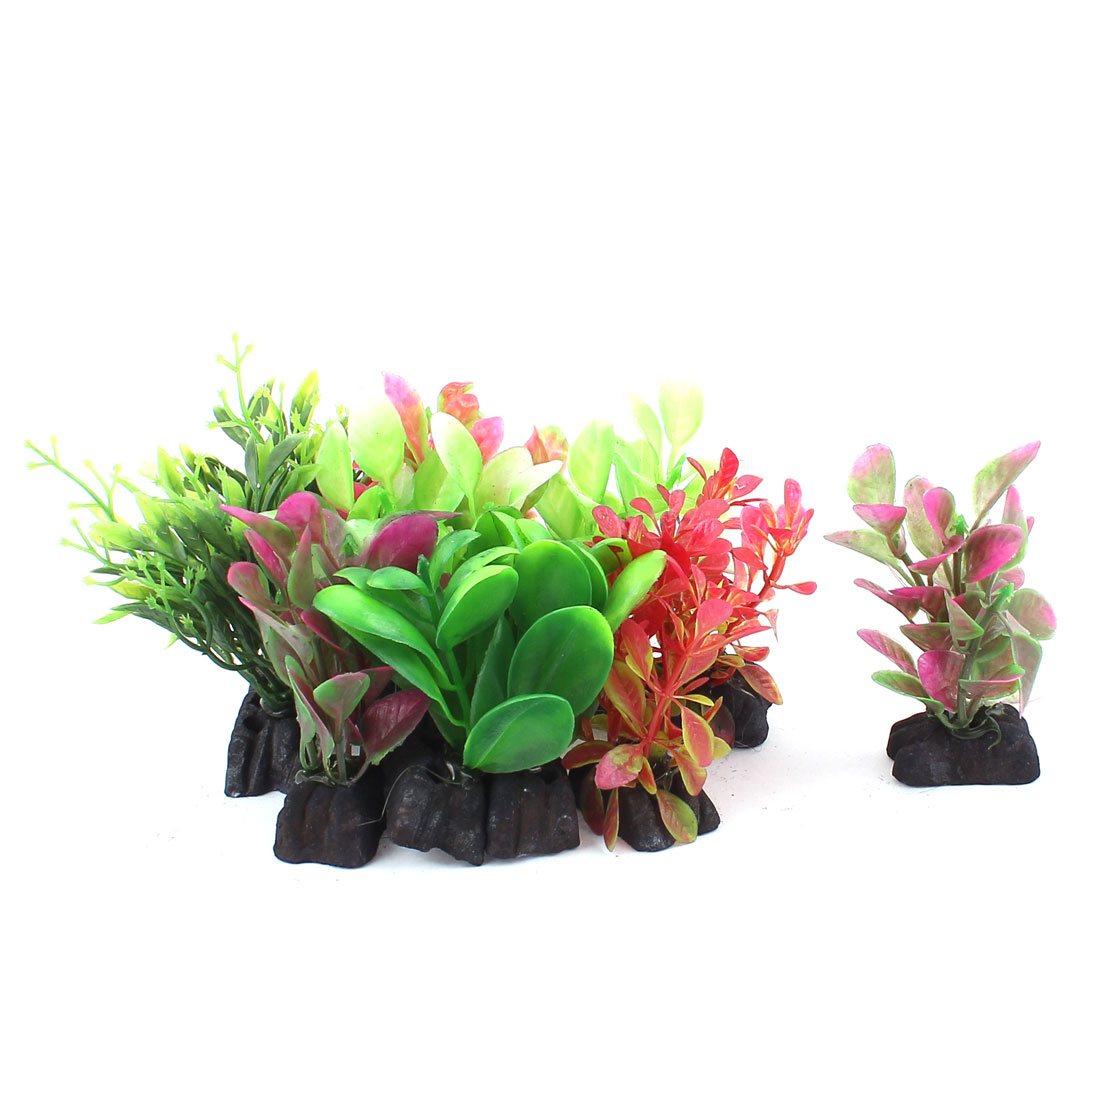 Unique Bargains Plastic Simulation Aquascaping Underwater Grass Decor Aquarium Plant 12PCS by